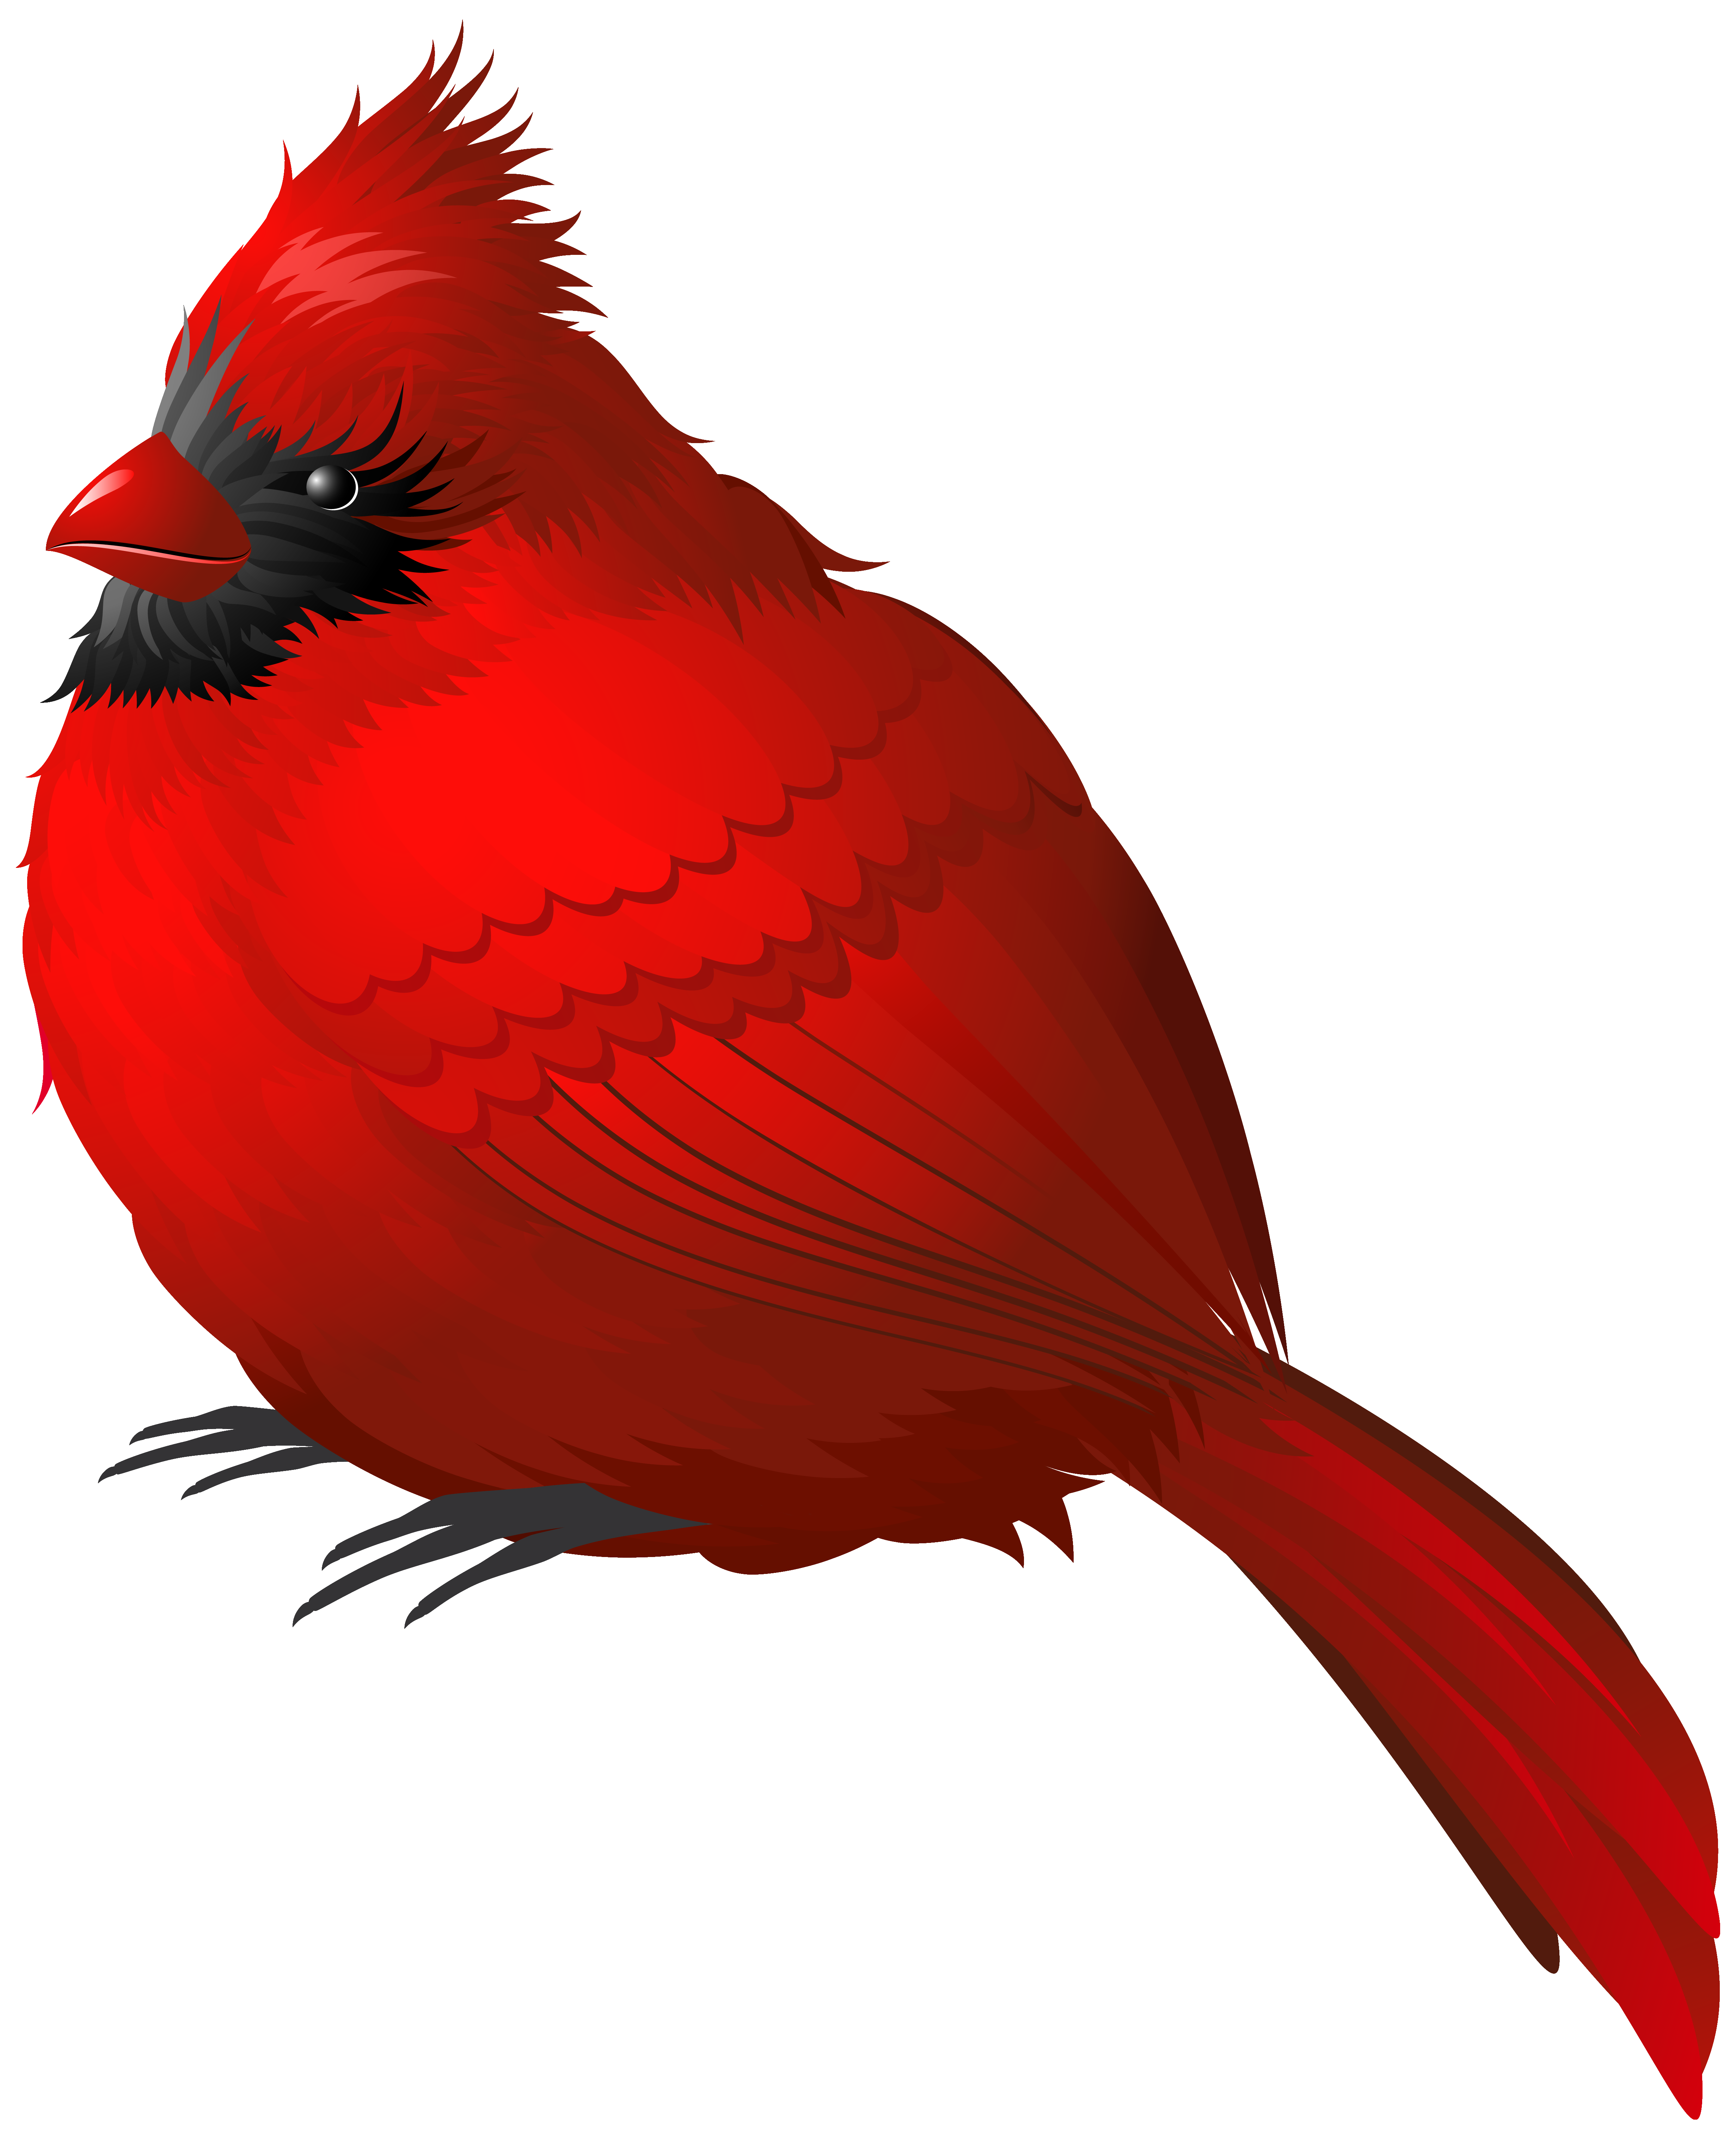 red bird png